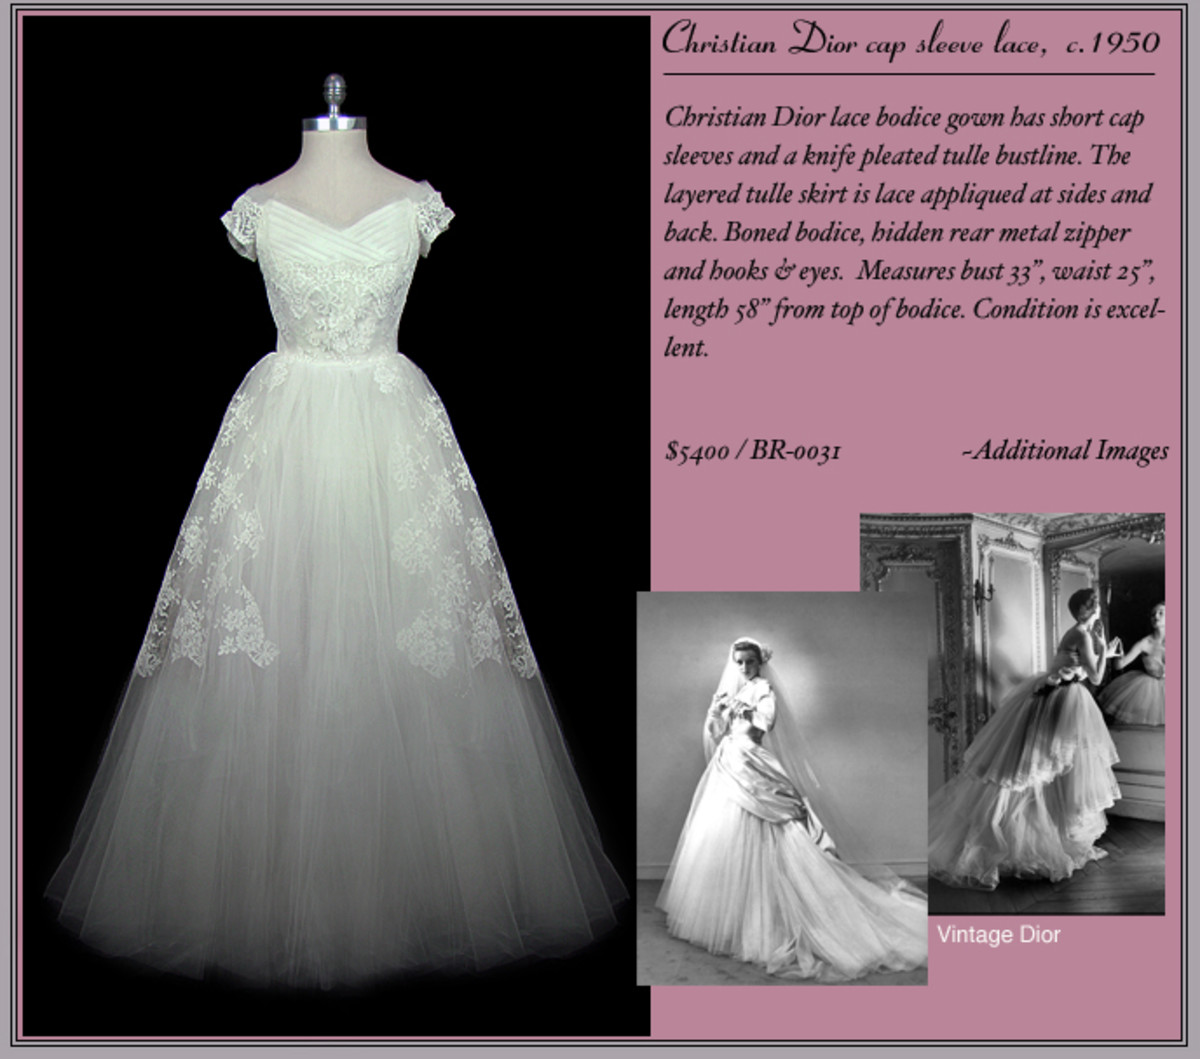 Christian Dior Wedding Gowns: Rock The Frock With 50s Style Wedding Dresses